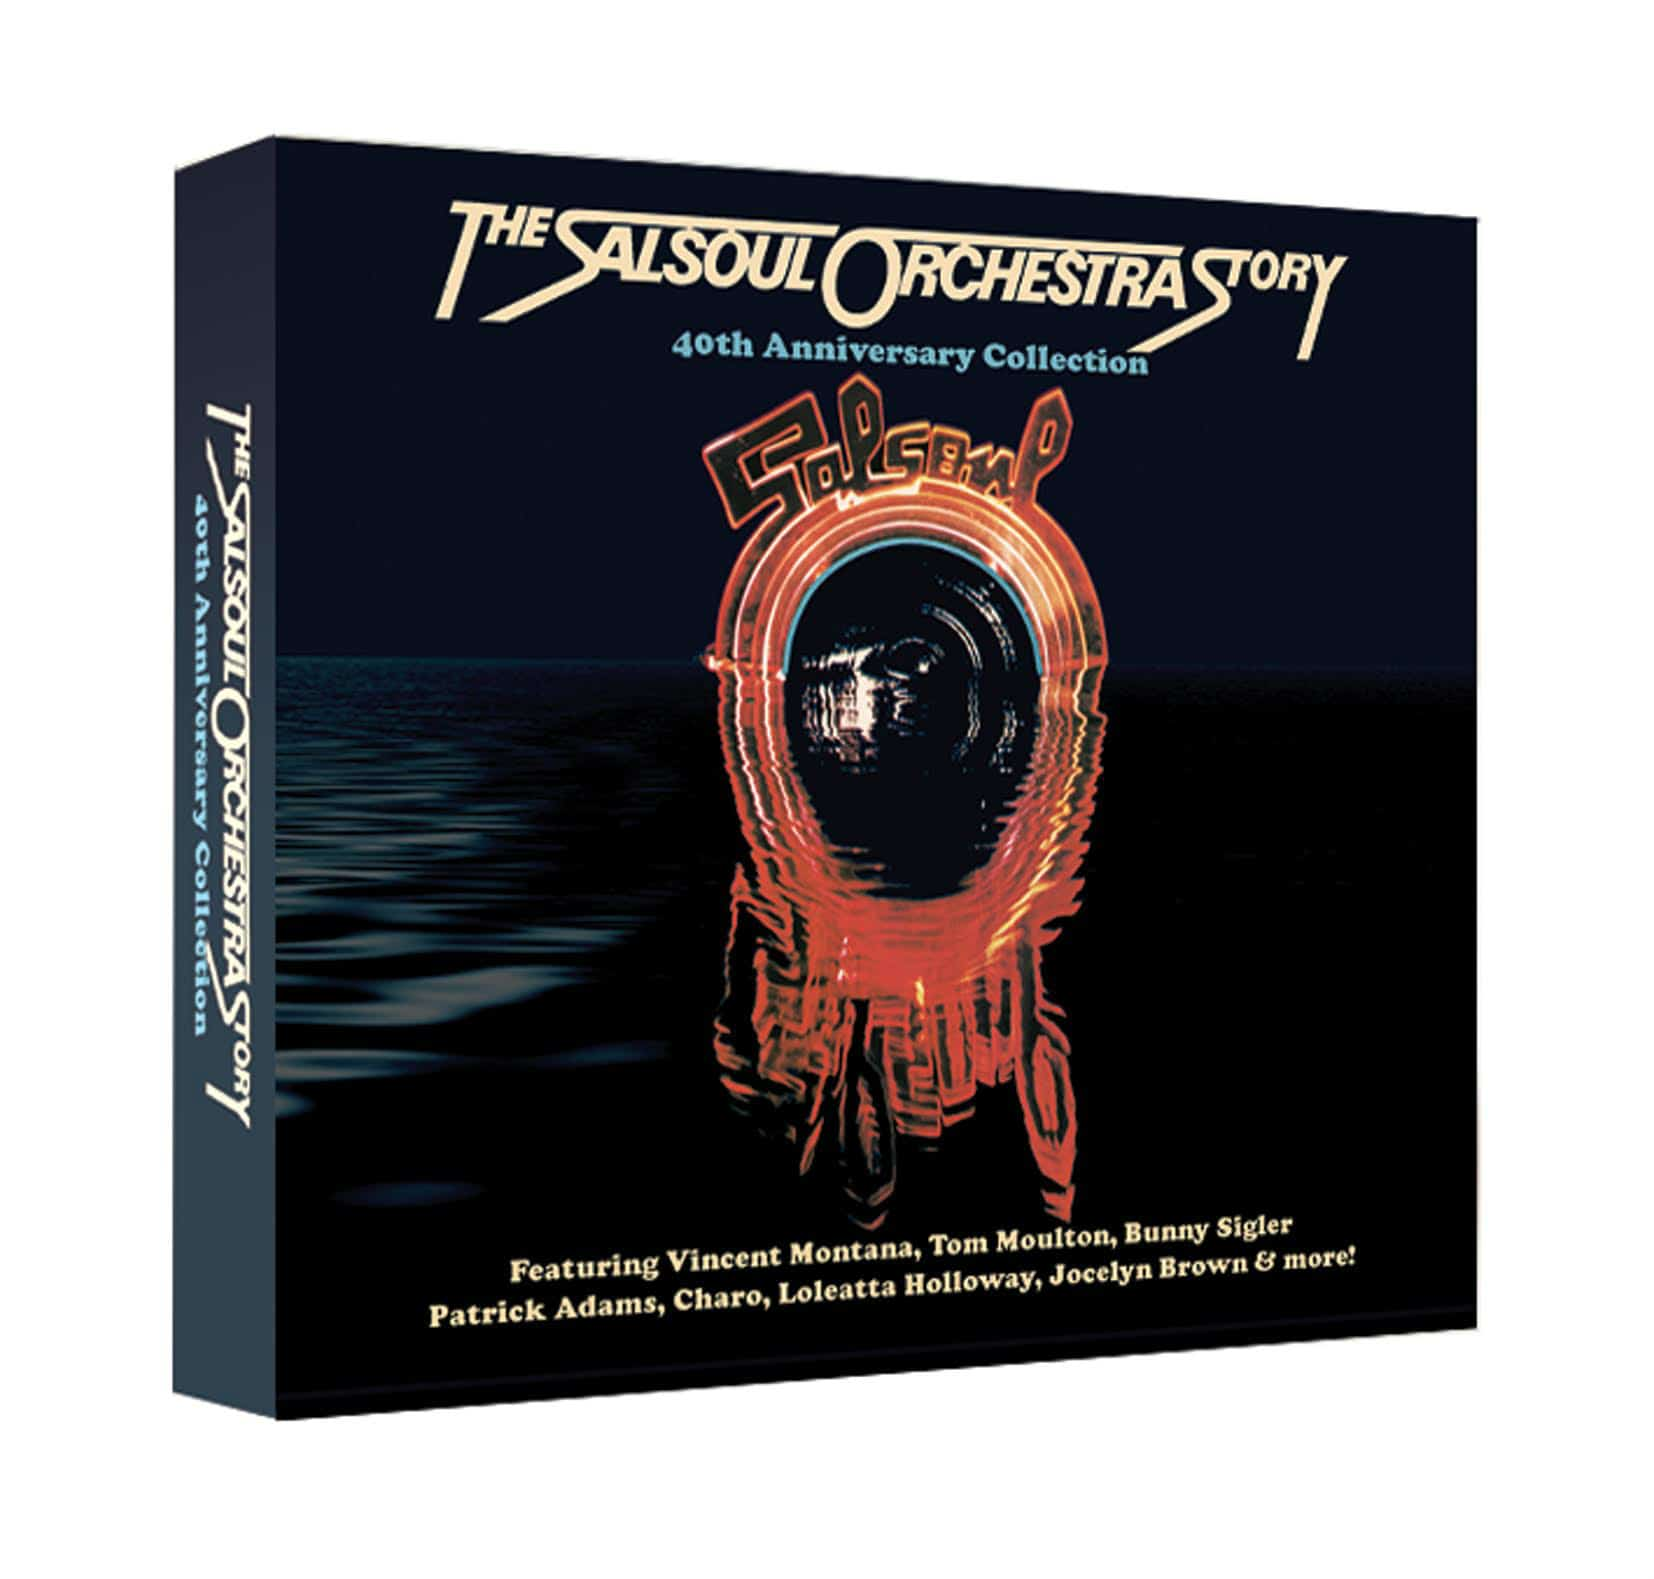 The Salsoul Orchestra Story